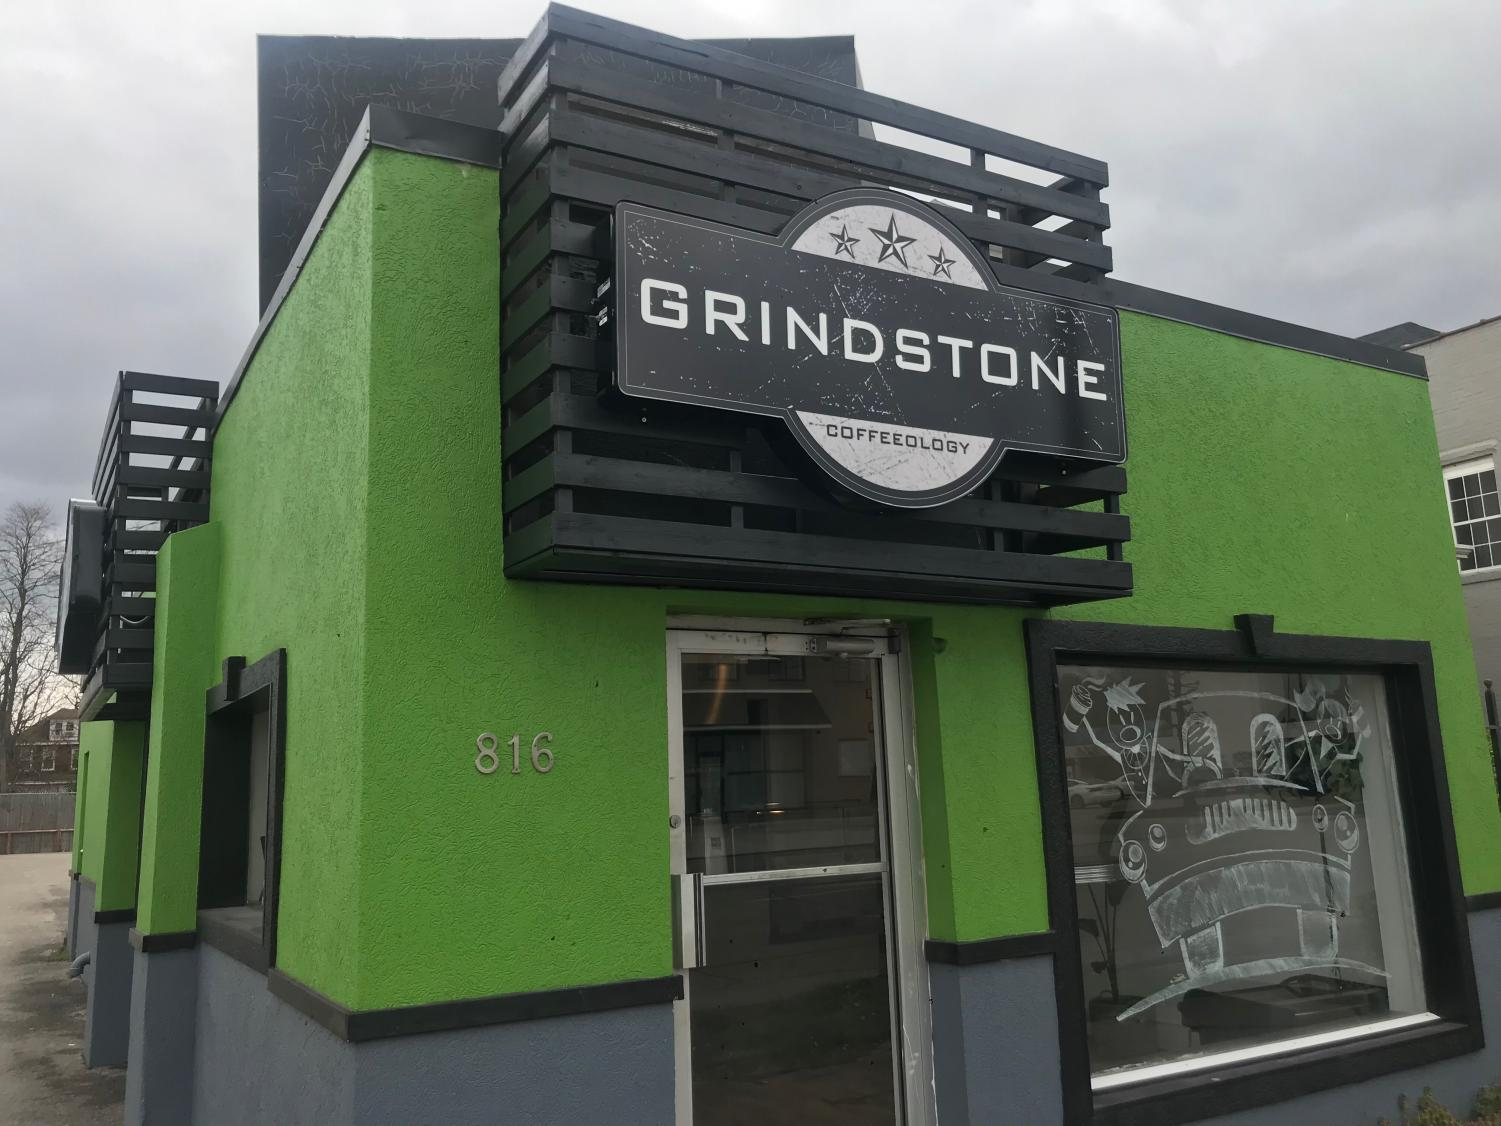 Grindstone Coffeeology Central is located at 816 8th Street in Huntington.